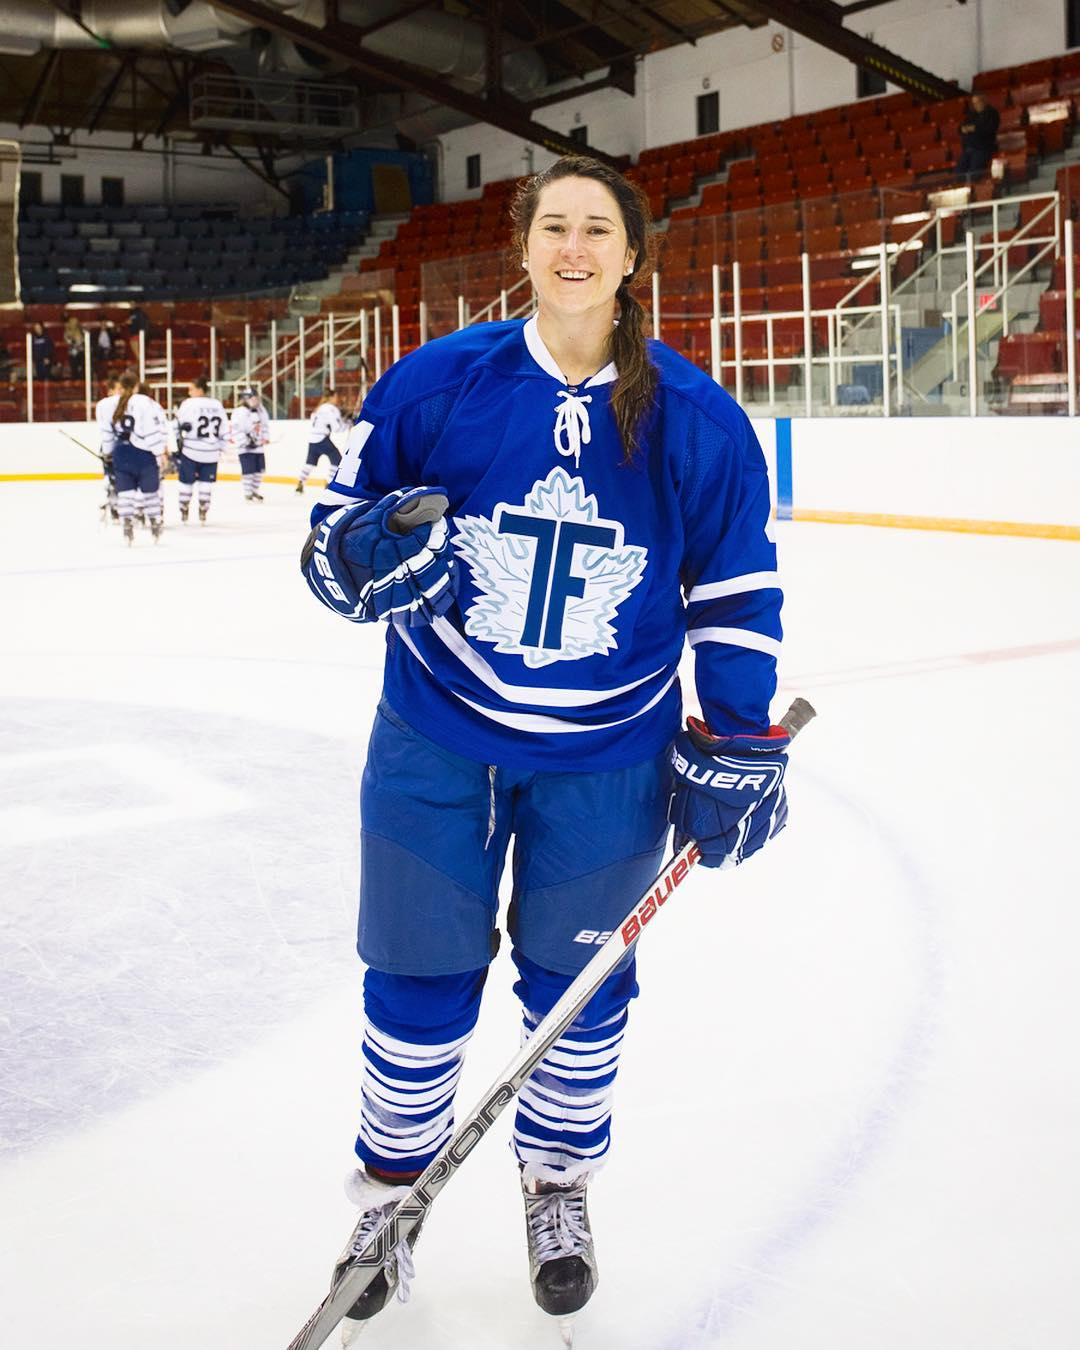 Anissa is a type 1 diabetic professional hockey player and scientific researcher.